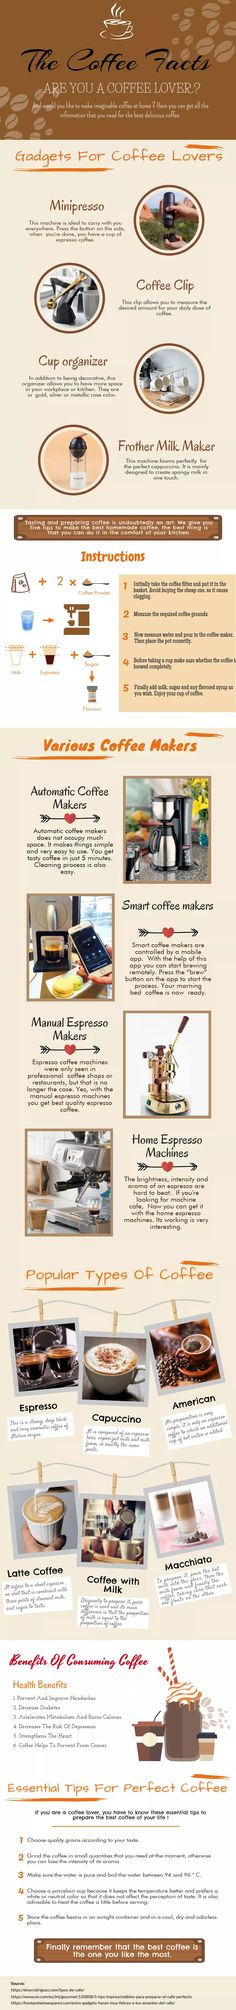 Coffee lovers, heads up! You can now make good coffee at the comforts of your home. Filter Coffee Machine, Espresso Coffee Machine, Natural Spice, Natural Coffee, Best Instant Coffee, Best Coffee, Coffee Uses, Coffee Type, Italian Coffee Maker